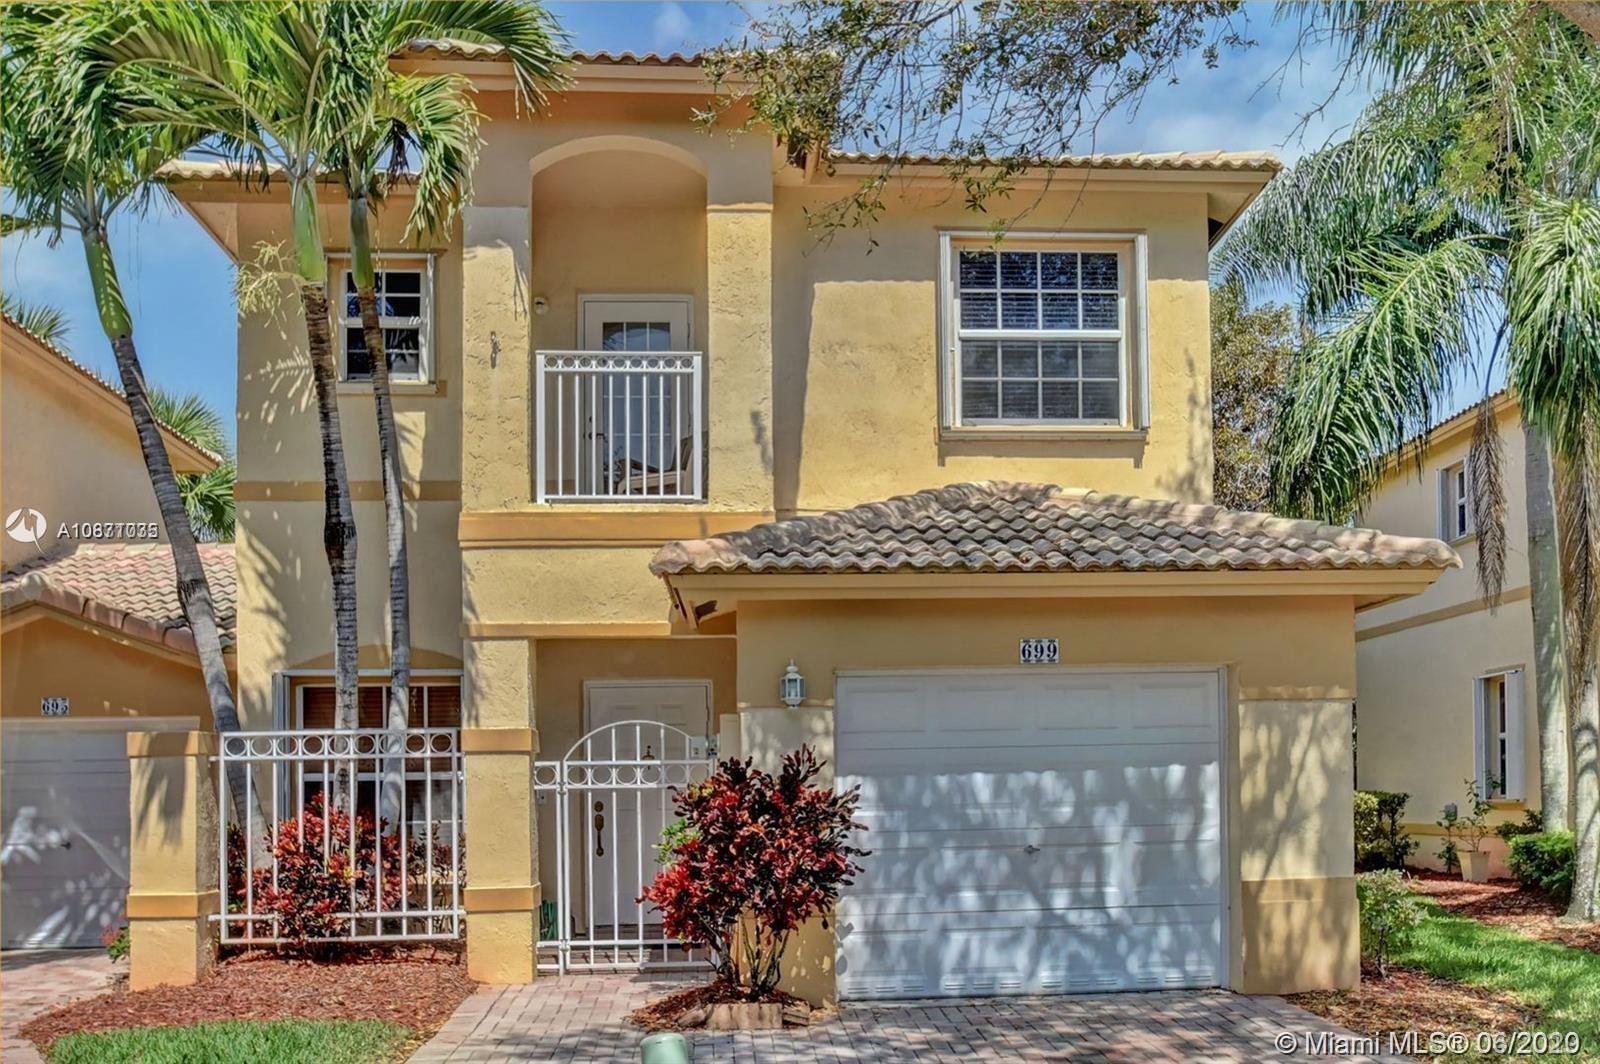 TURN  Key! 3 Bed, 3 Full Bath plus a Loft, Alexander Palm Model the largest model in the community! 1440 square feet! Town Home with a One Car Garage end unit  located in Luxurious Pembroke Isles. Unit Features an Open Kitchen w/SS Appliance. Spacious 2nd Floor Master Bedroom w/Private Balcony! BONUS PLUS A LOFT! First Floor Guest Bedroom w/Bath. . Open Patio w/Tropical Garden Views. 24 Hr. Guard Gated Community w/Country Club Amenities: Three Pools, Tennis, Basketball, Gym, Handball, Soccer, Tot Lots Bike/Jog path, Boat Dock, Bbq/Picnic Area, Clubhouse-Clubroom, Community Room, Exercise Room, Fishing Pier. HOA INCLUDES ALARM, CABLE, INTERNET, LAWNCARE, SPRINKLERS, SECURITY CONTROL! AIR CONDITIONER 2016. FHA APPROVED!!!